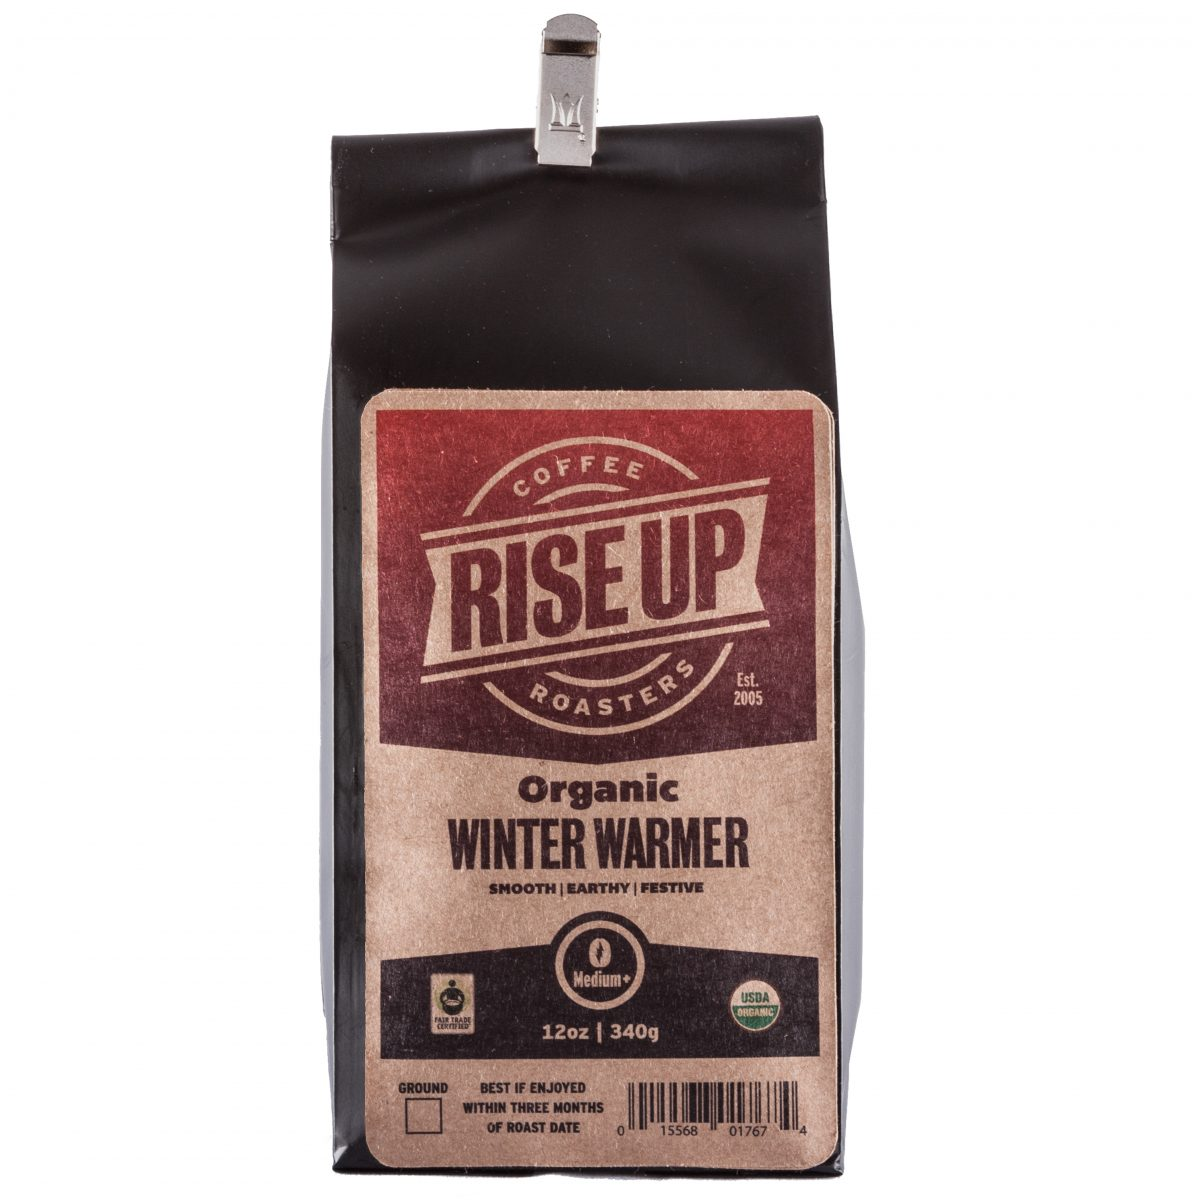 Winter Warmer - Rise Up Coffee Roasters